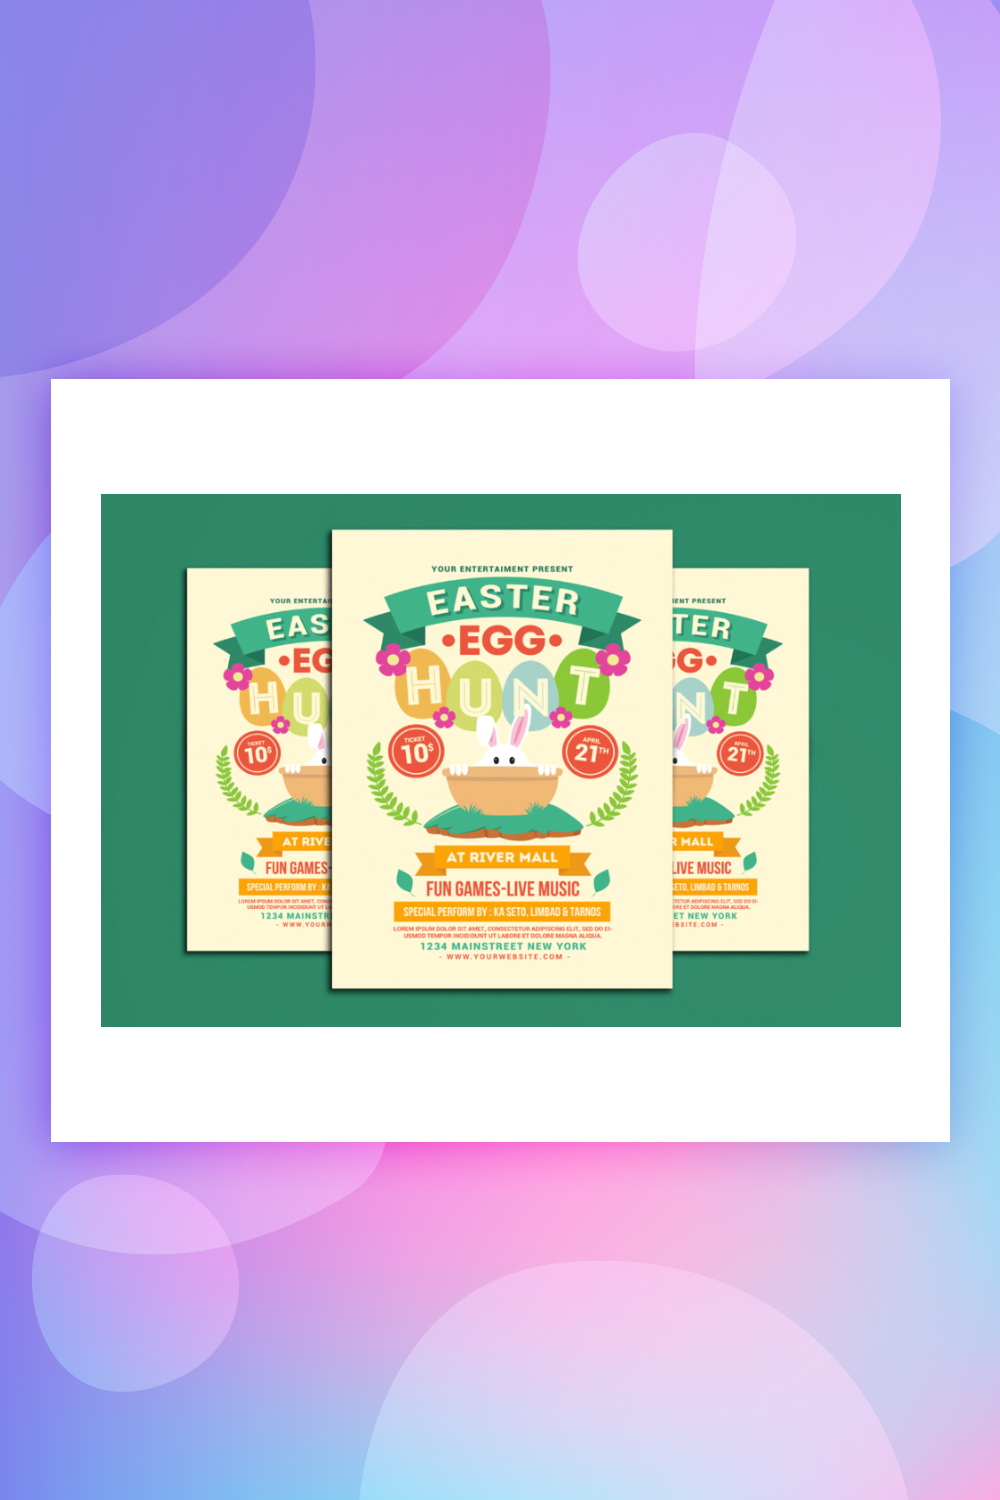 Easter Egg Hunt Flyer Corporate Identity Template